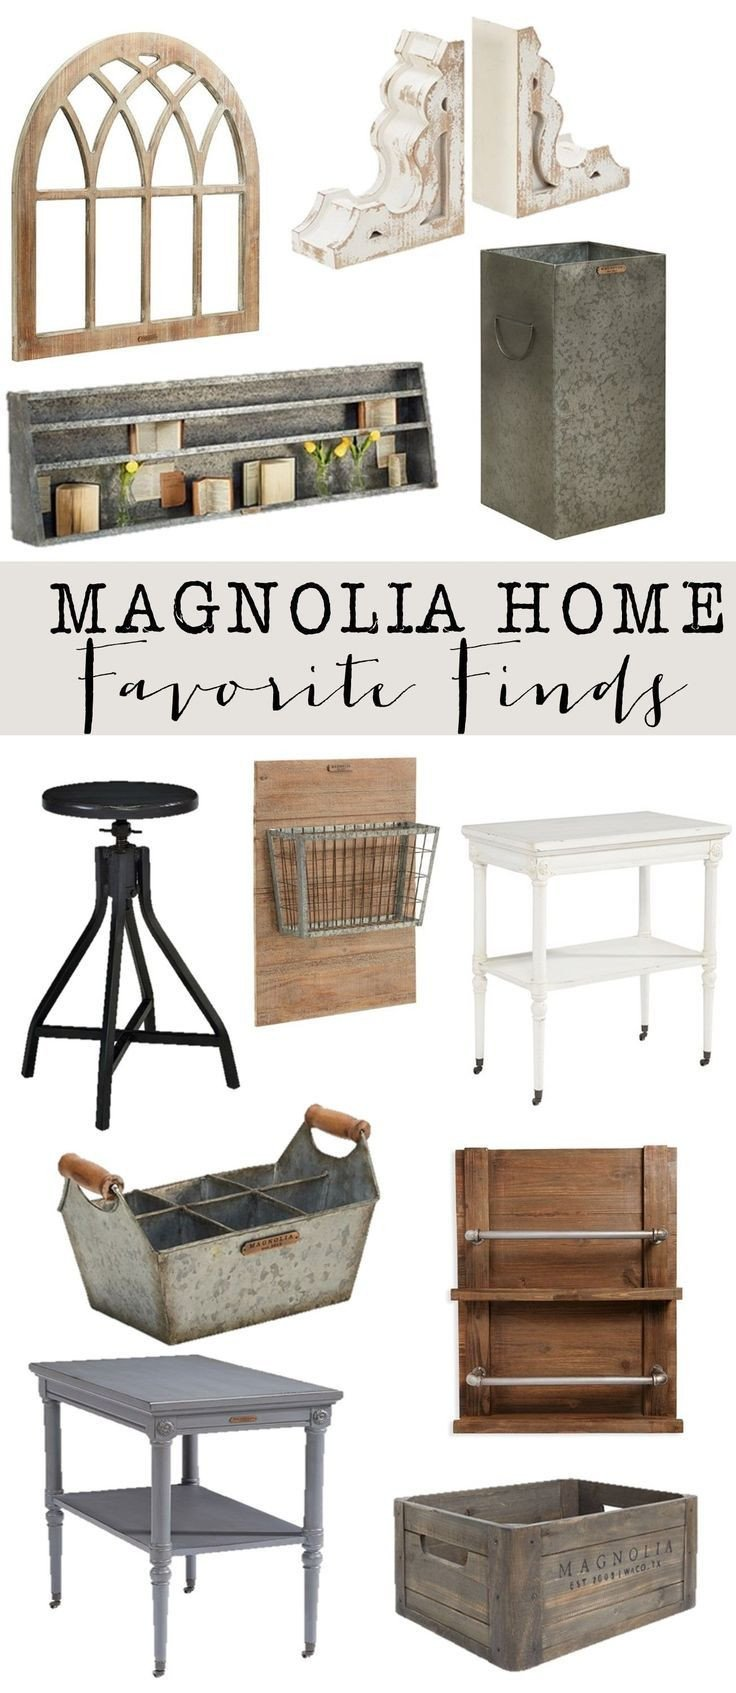 Joanna Gaines Home Decor Line Best Of Friday Favorites Magnolia Home Decor My Favorites From Joanna Gaines New Home Decor Line Get